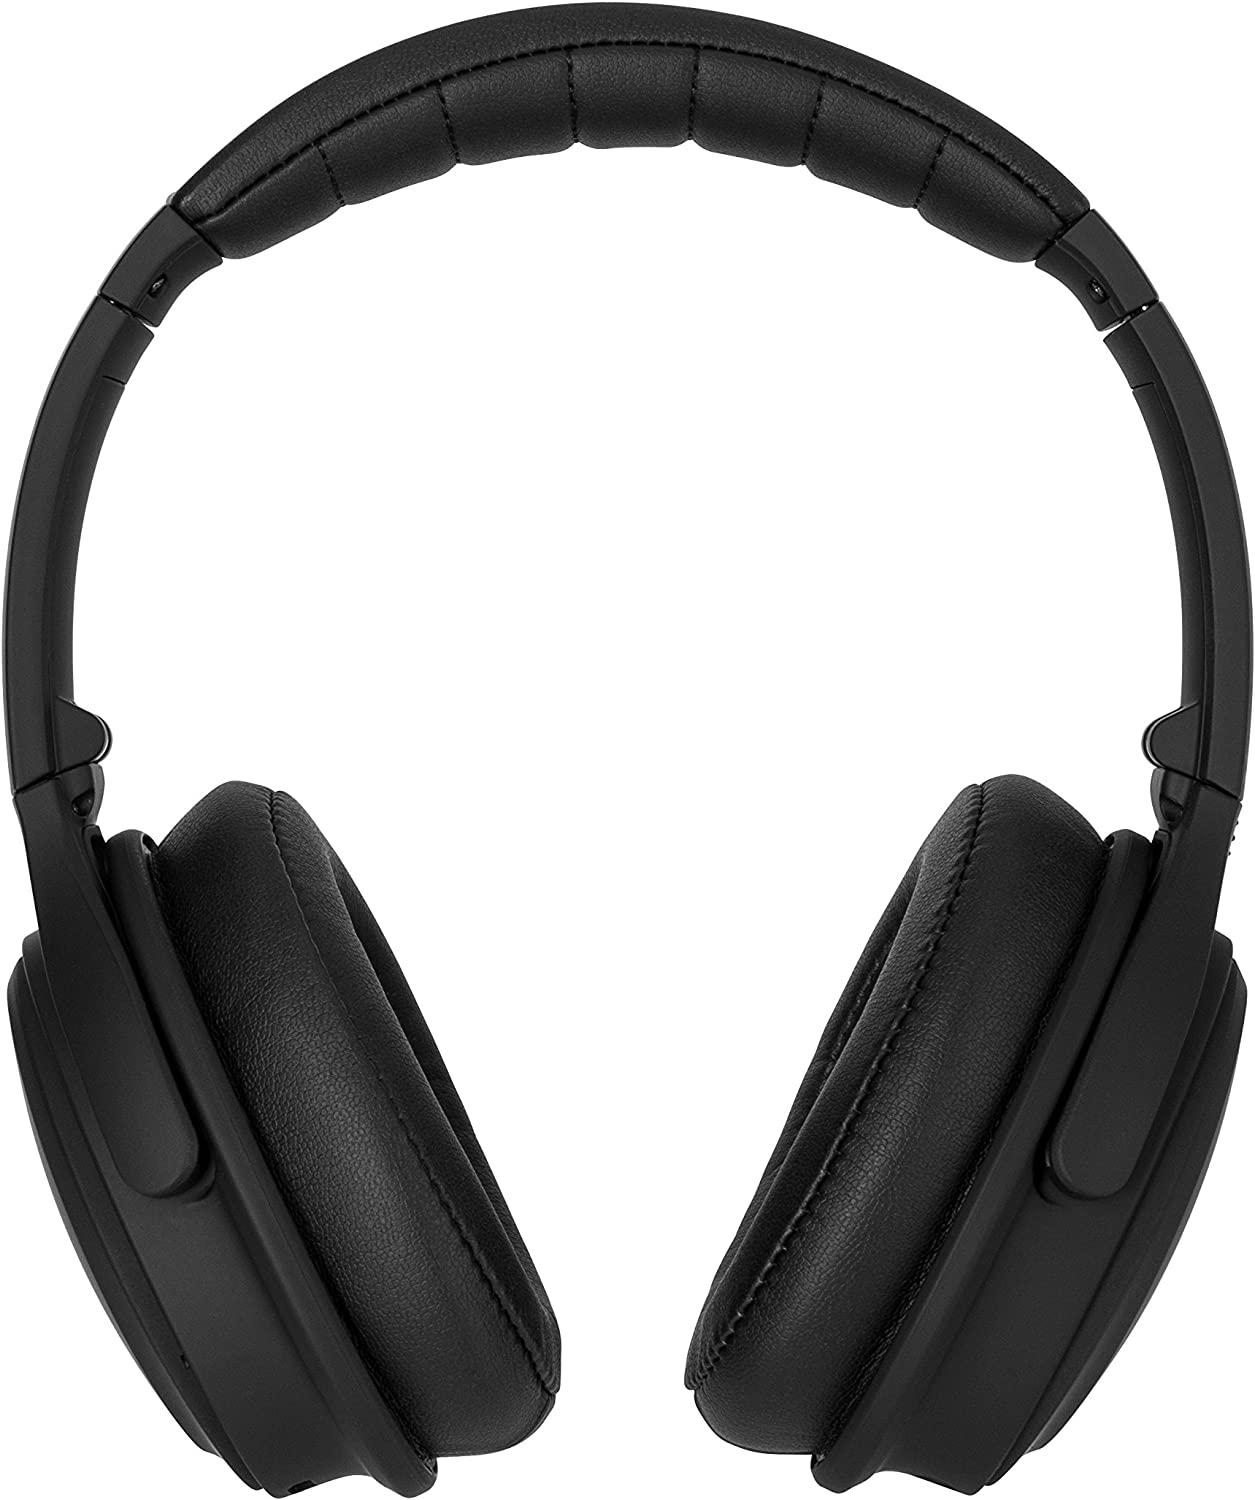 Xqisit ANC oE400 Department store Noise Canceling - Headphones Bluetooth Wireless 2021 autumn and winter new